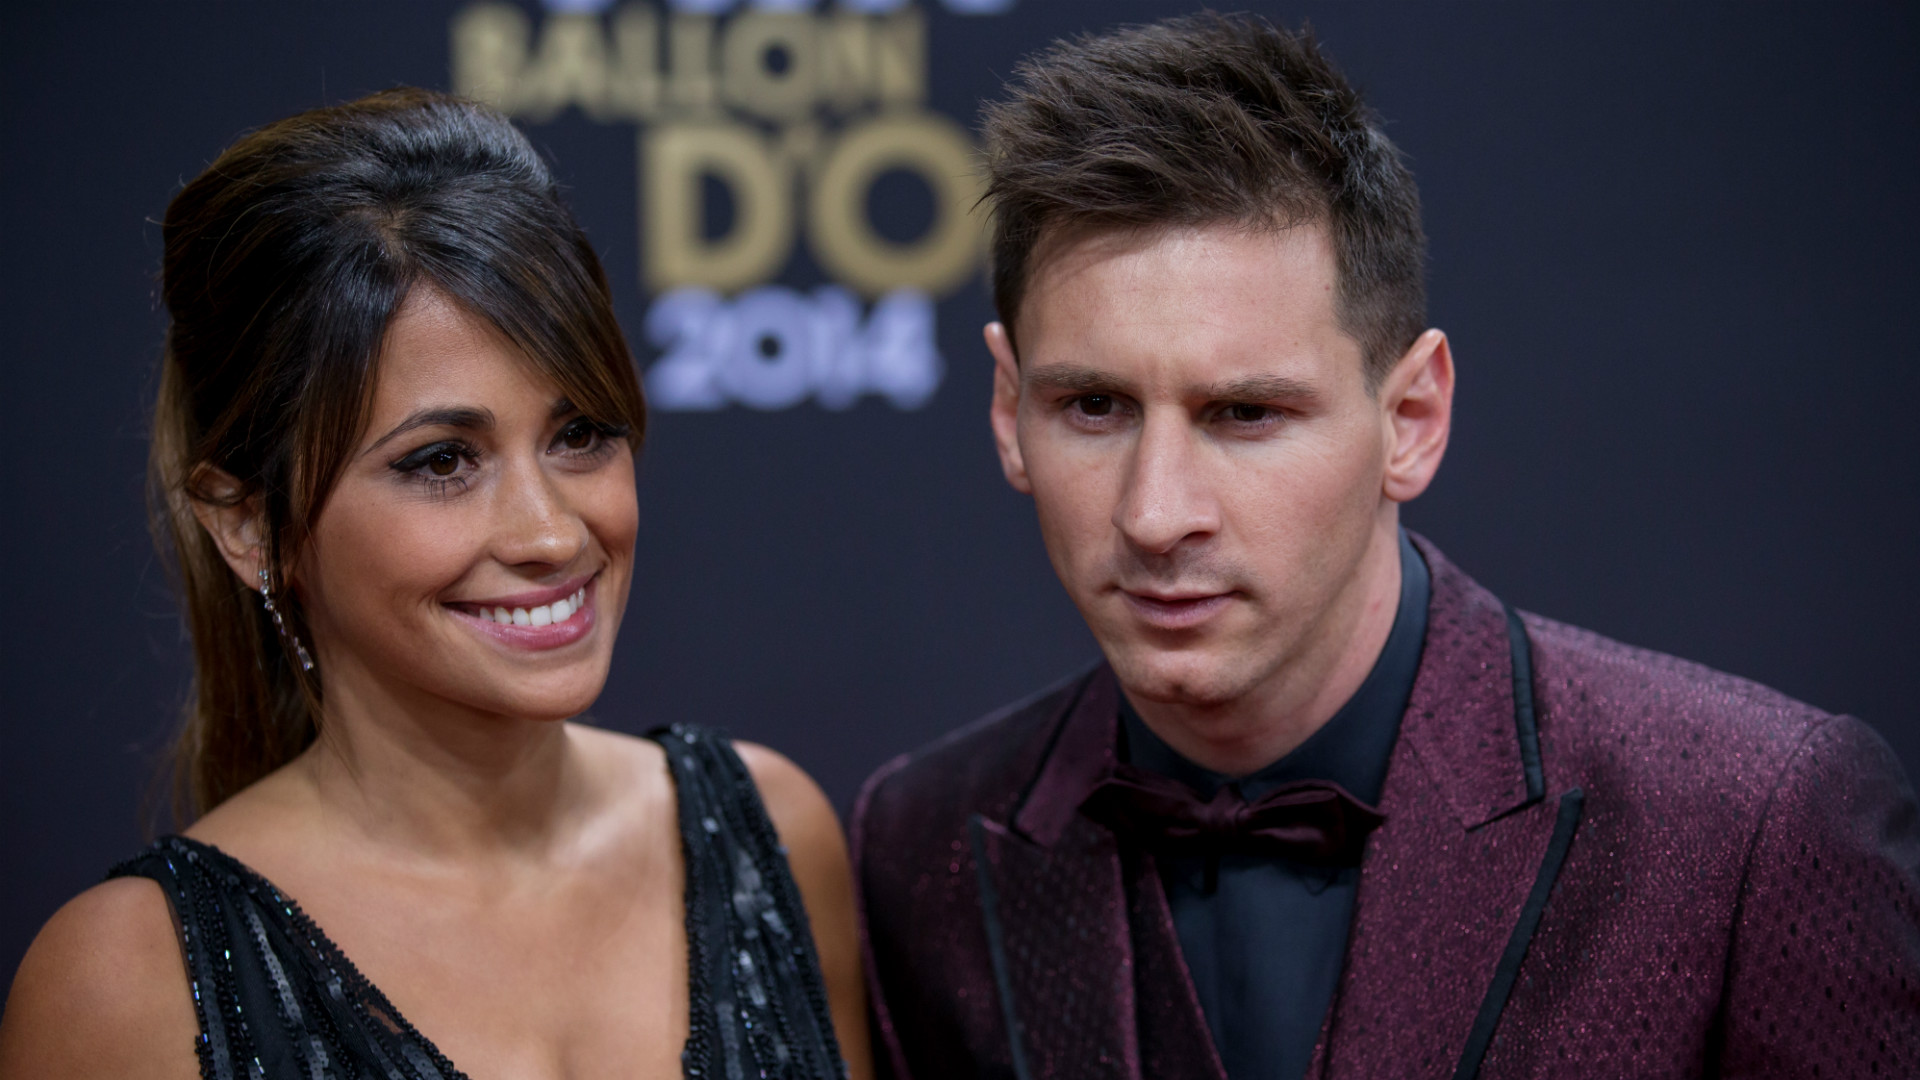 Who is messi dating